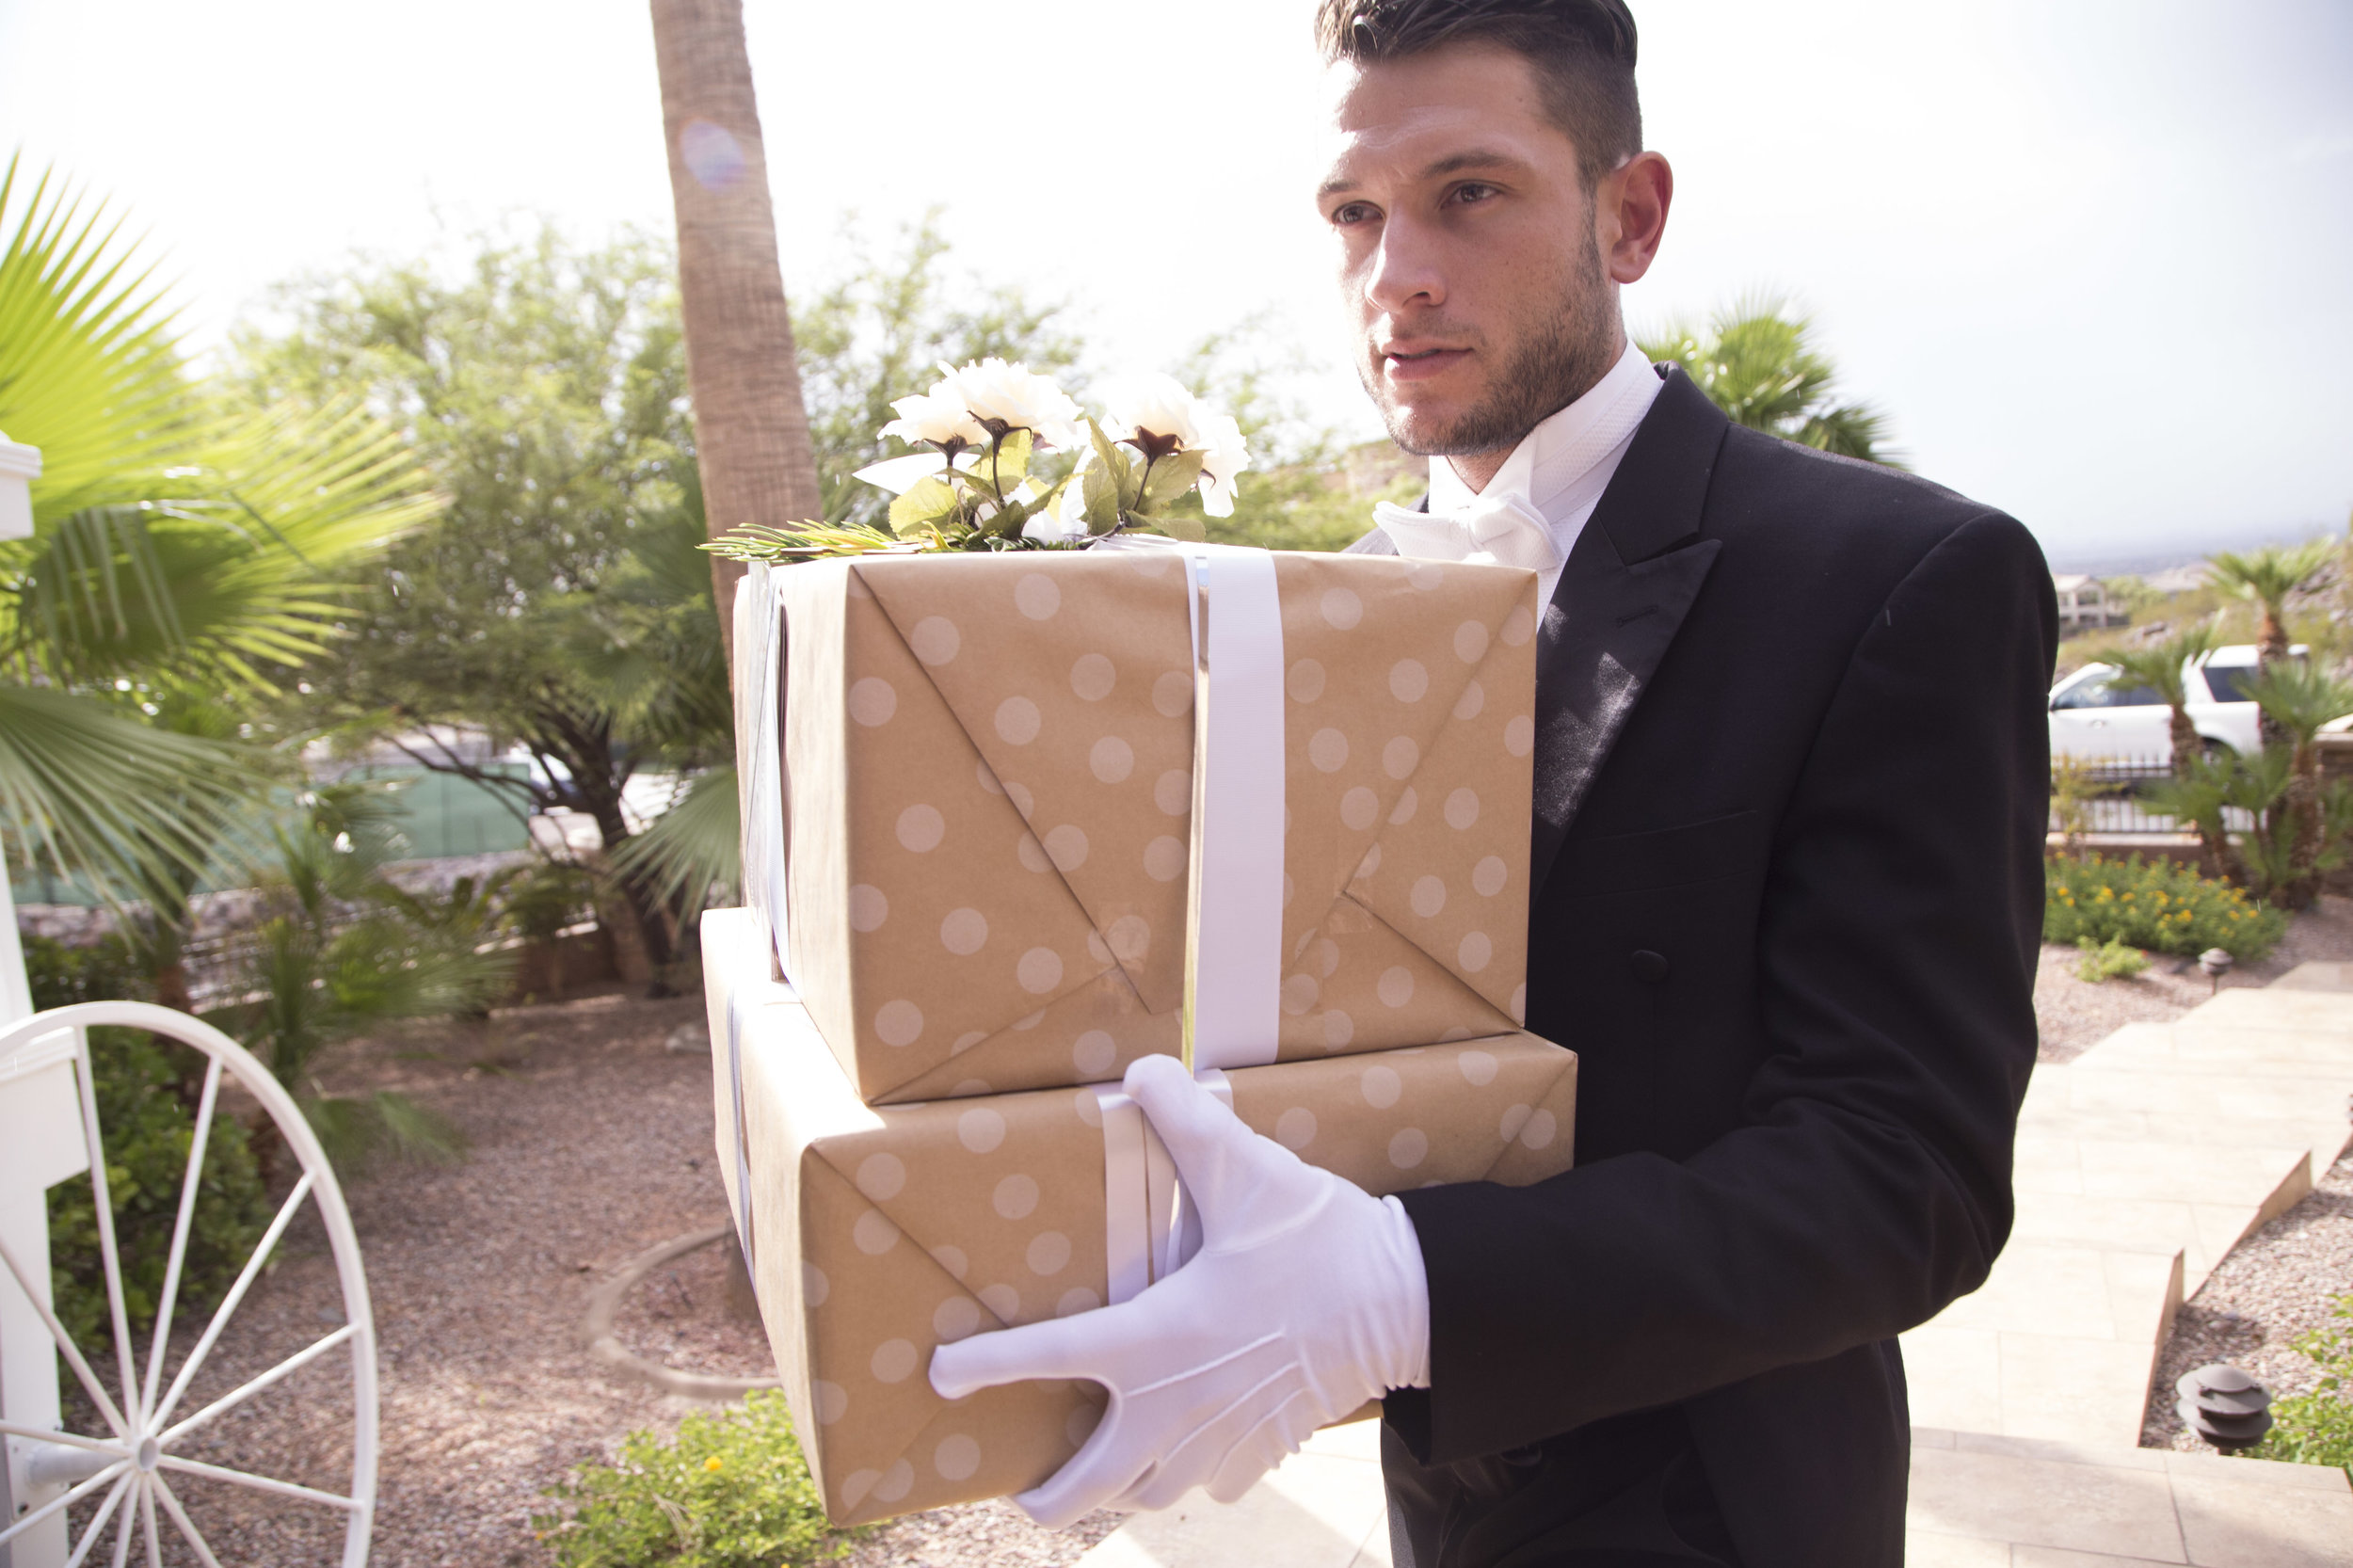 Butler accepts gifts and carries them into the house for the bride and groom. Luxury Las Vegas Wedding Planner Andrea Eppolito. Image by AltF Photography.